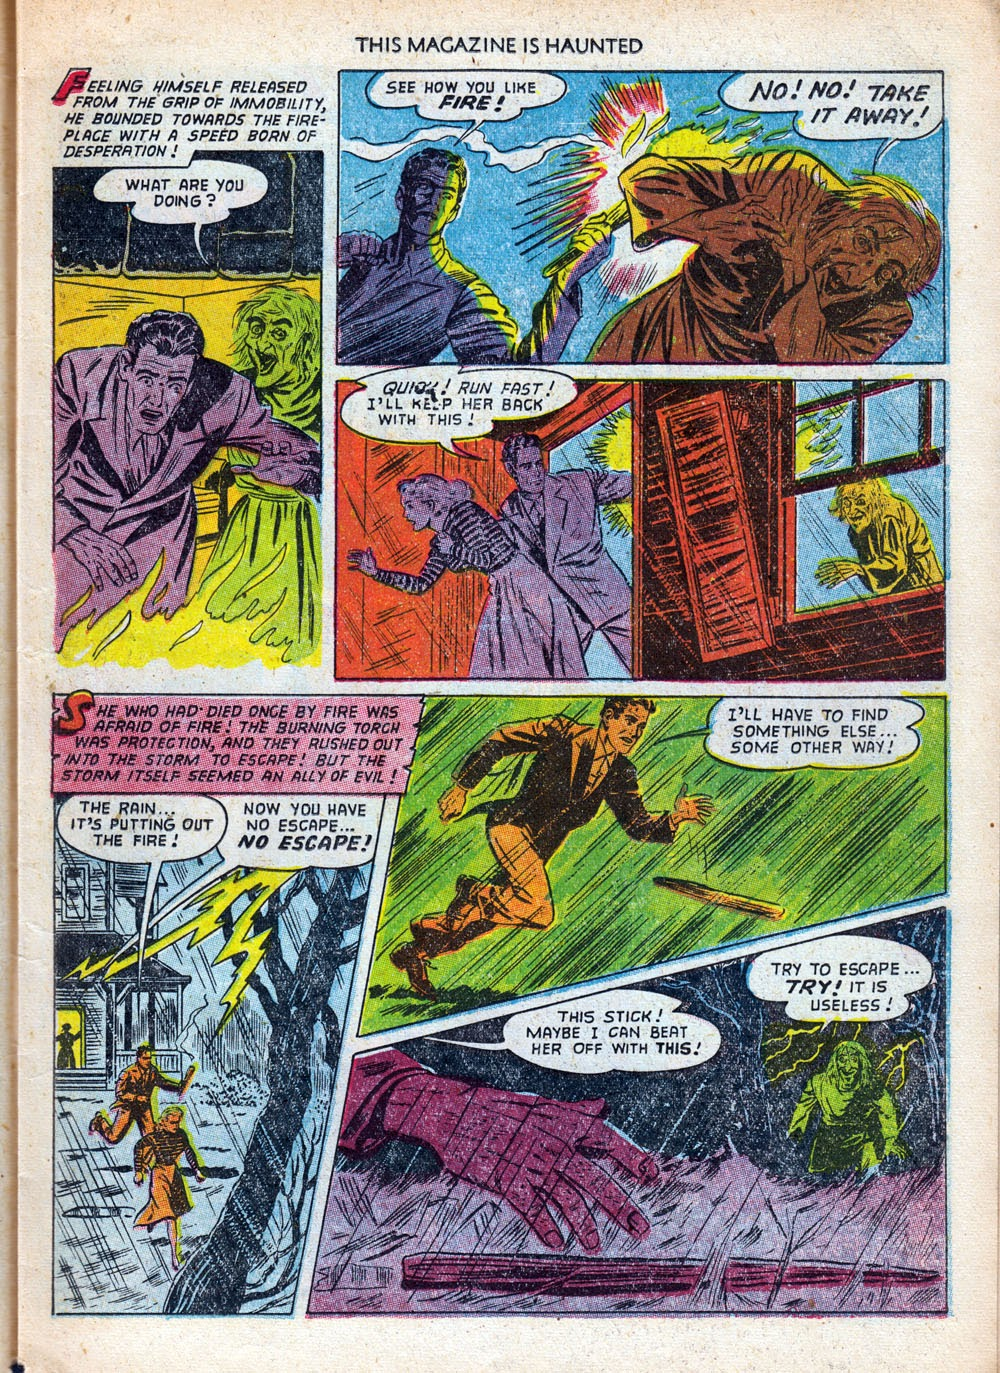 Read online This Magazine Is Haunted comic -  Issue #9 - 11